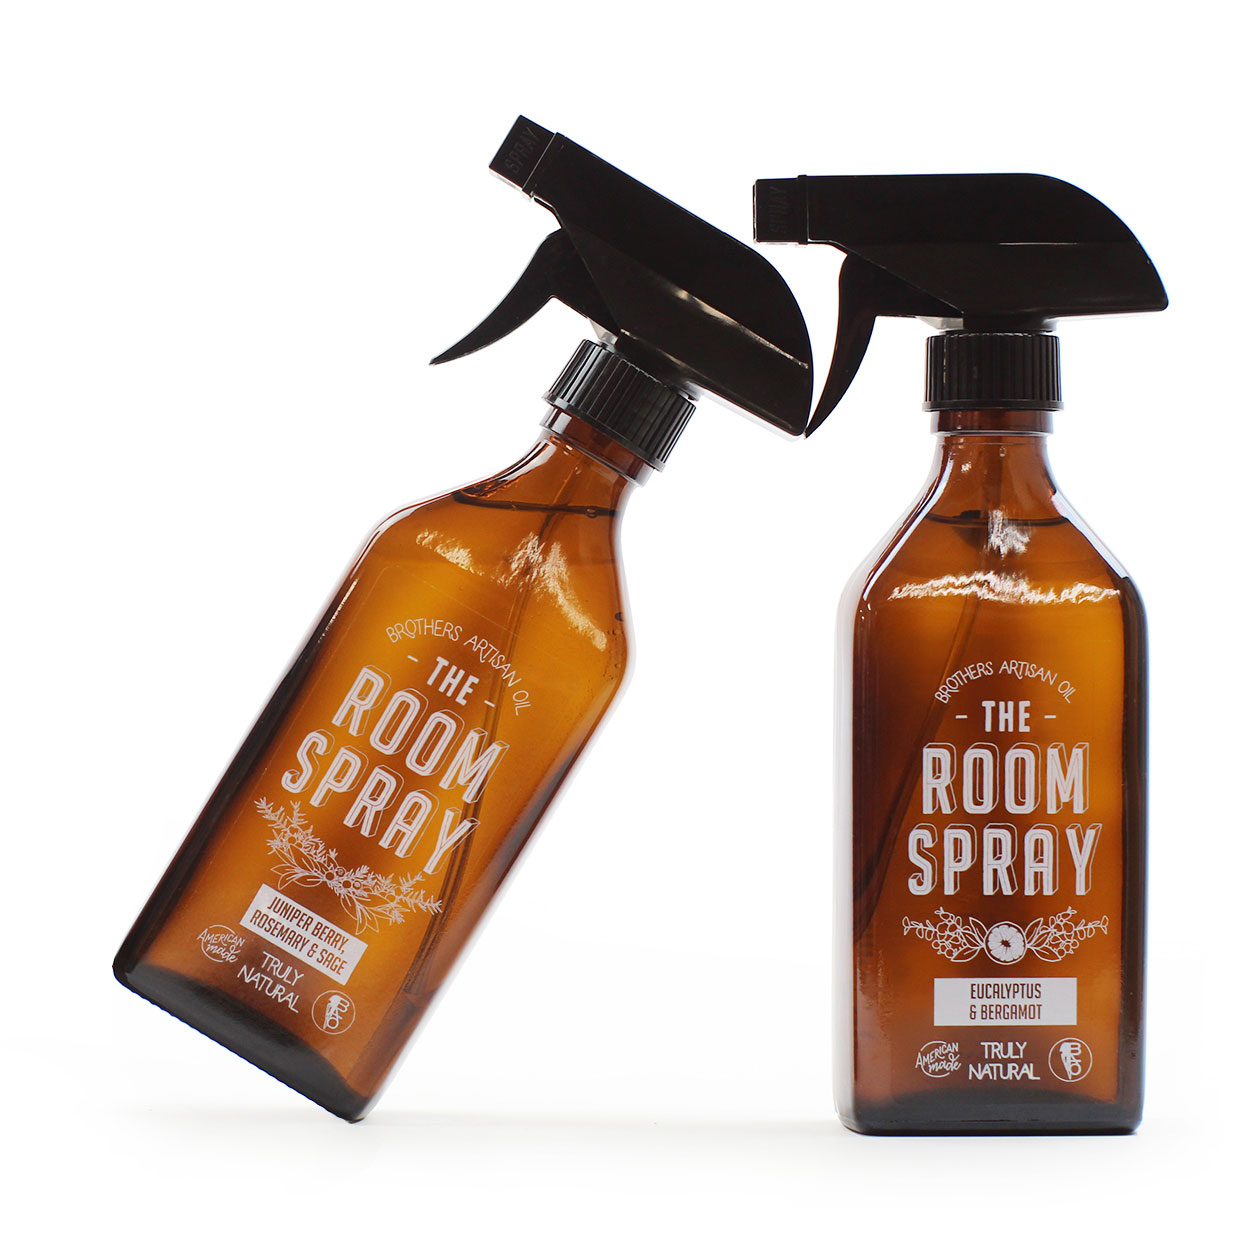 The Room Spray: Eucalyptus & Bergamot